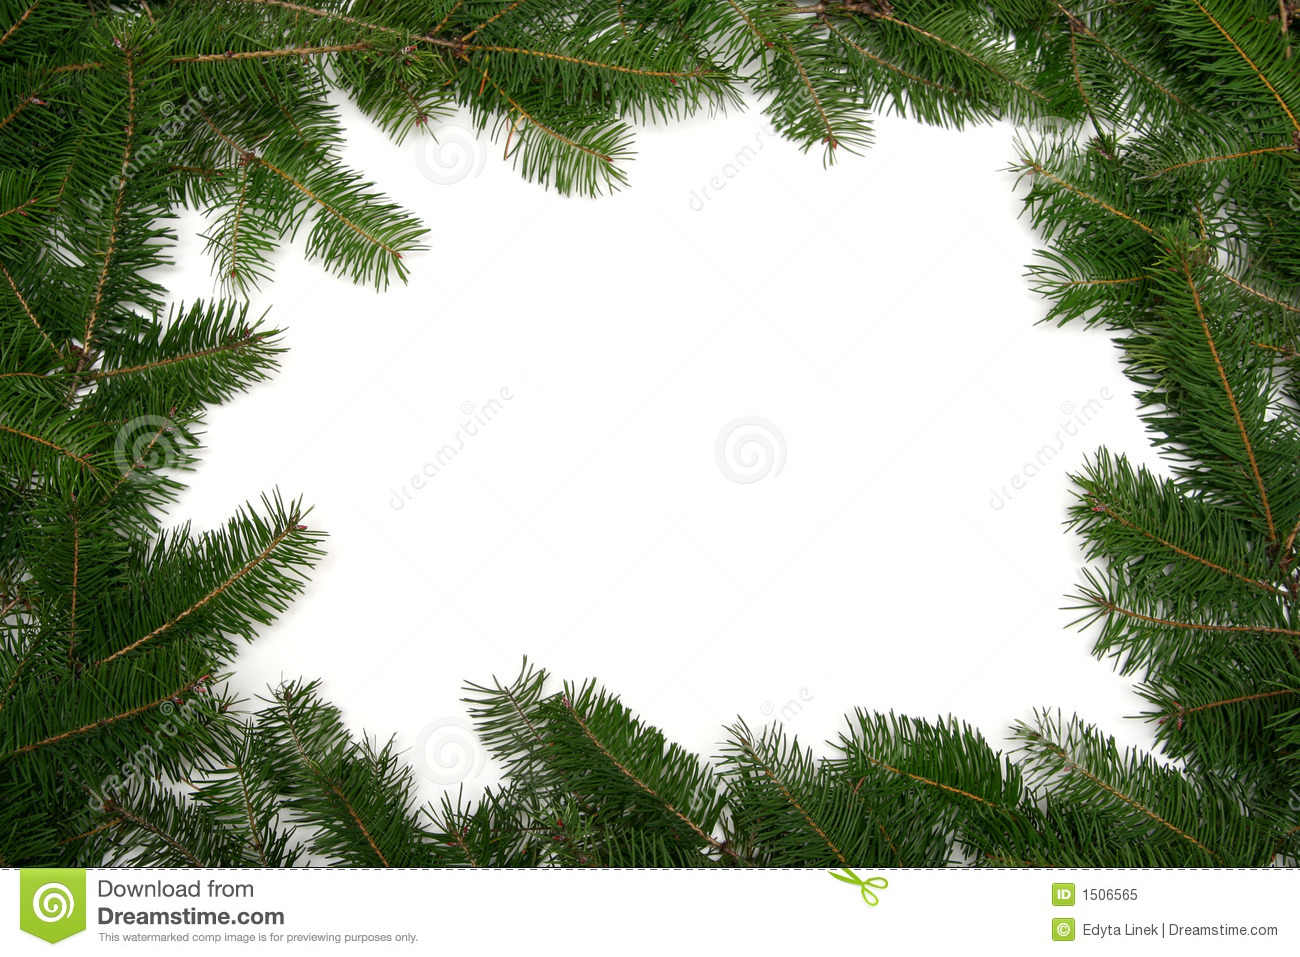 Christmas Tree Frame Royalty Free Stock Photo - Image: 1506565